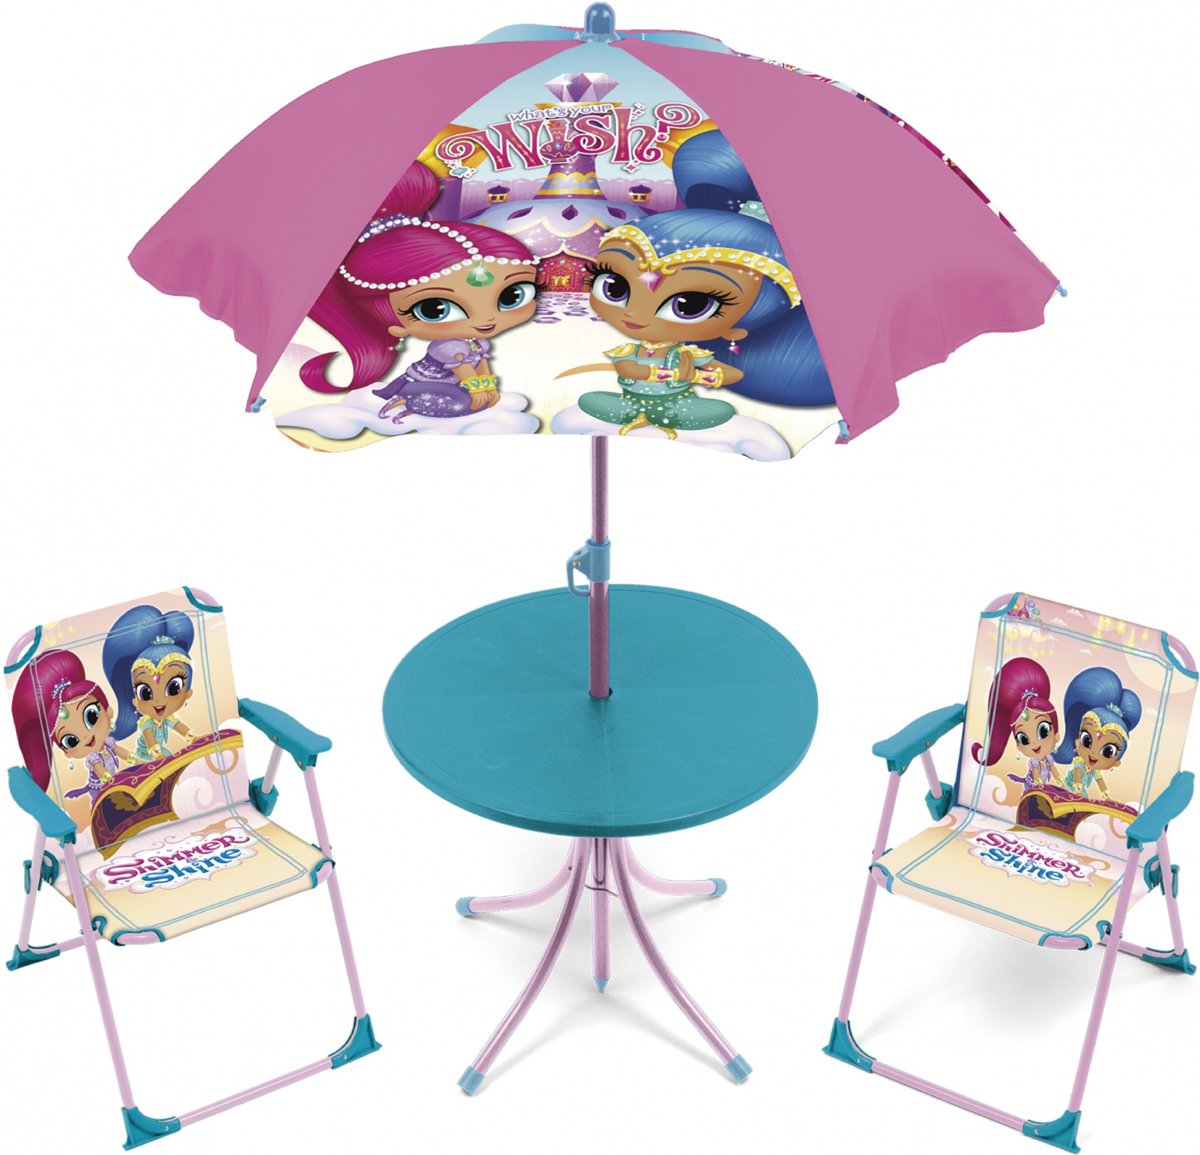 Tuinset Shimmer And Shine Meisjes Roze/blauw 4-delig